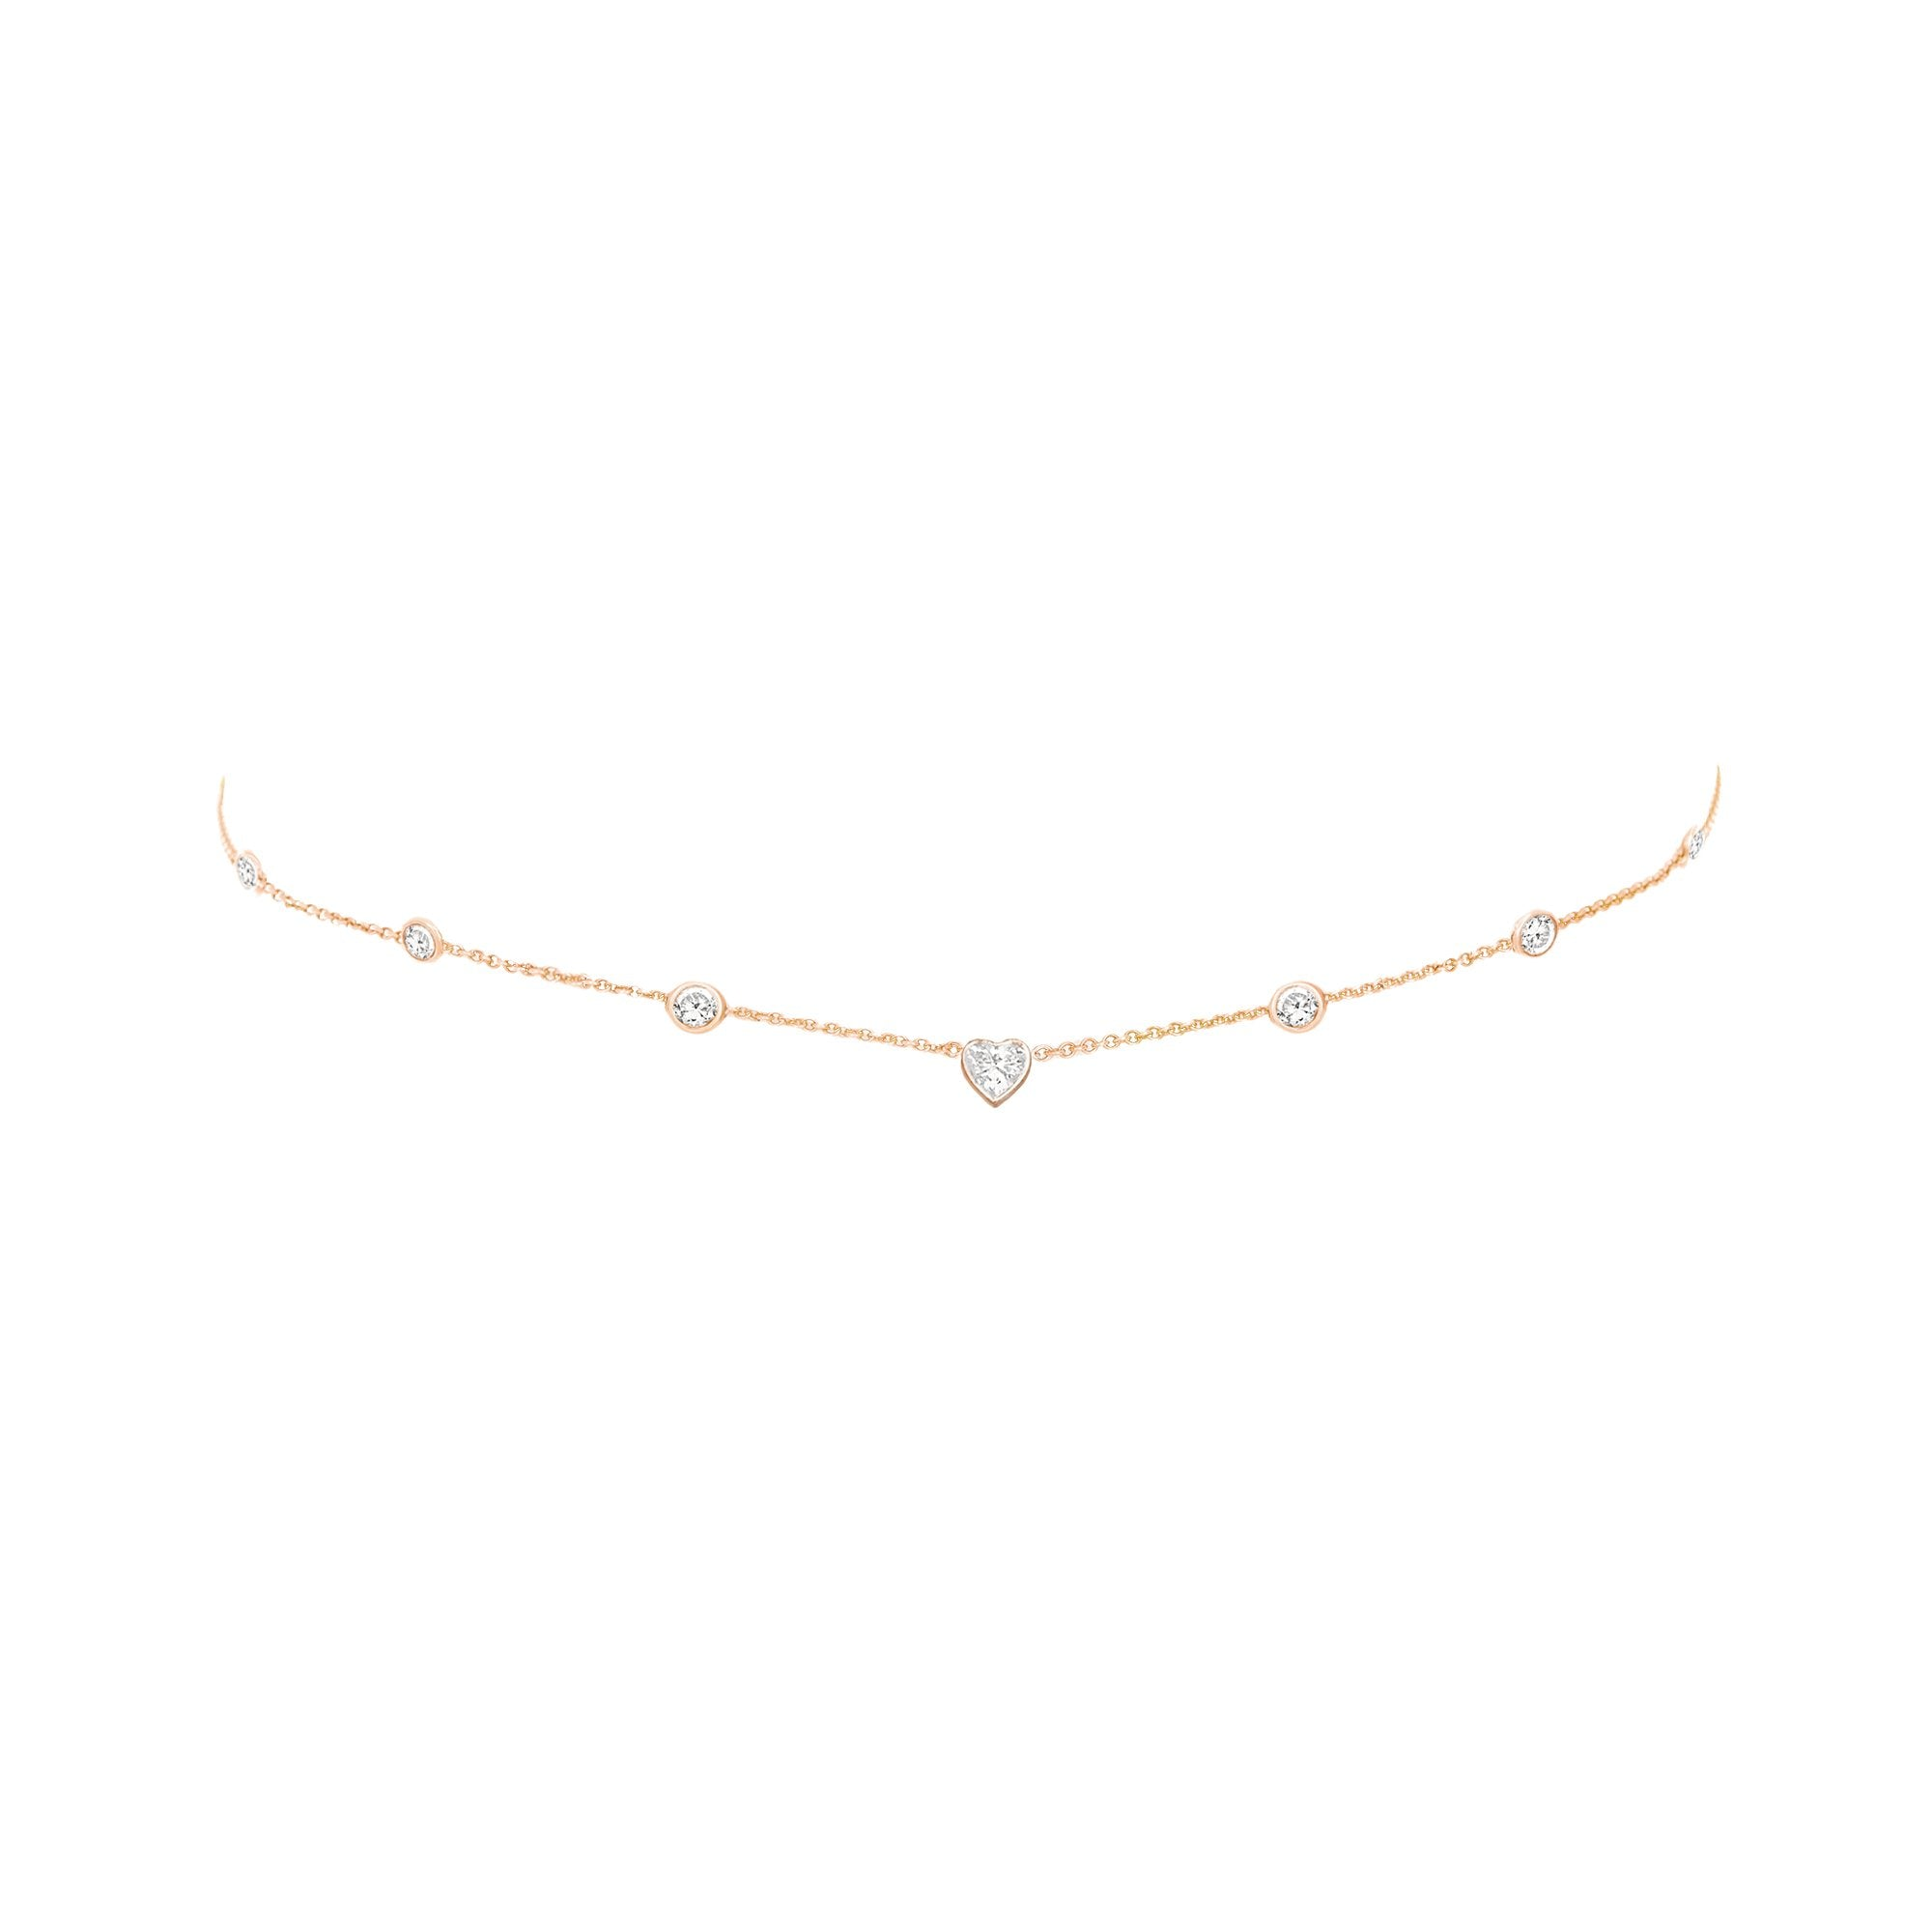 5 or 7 Diamond Heart of Light Orbit Choker with Heart Center